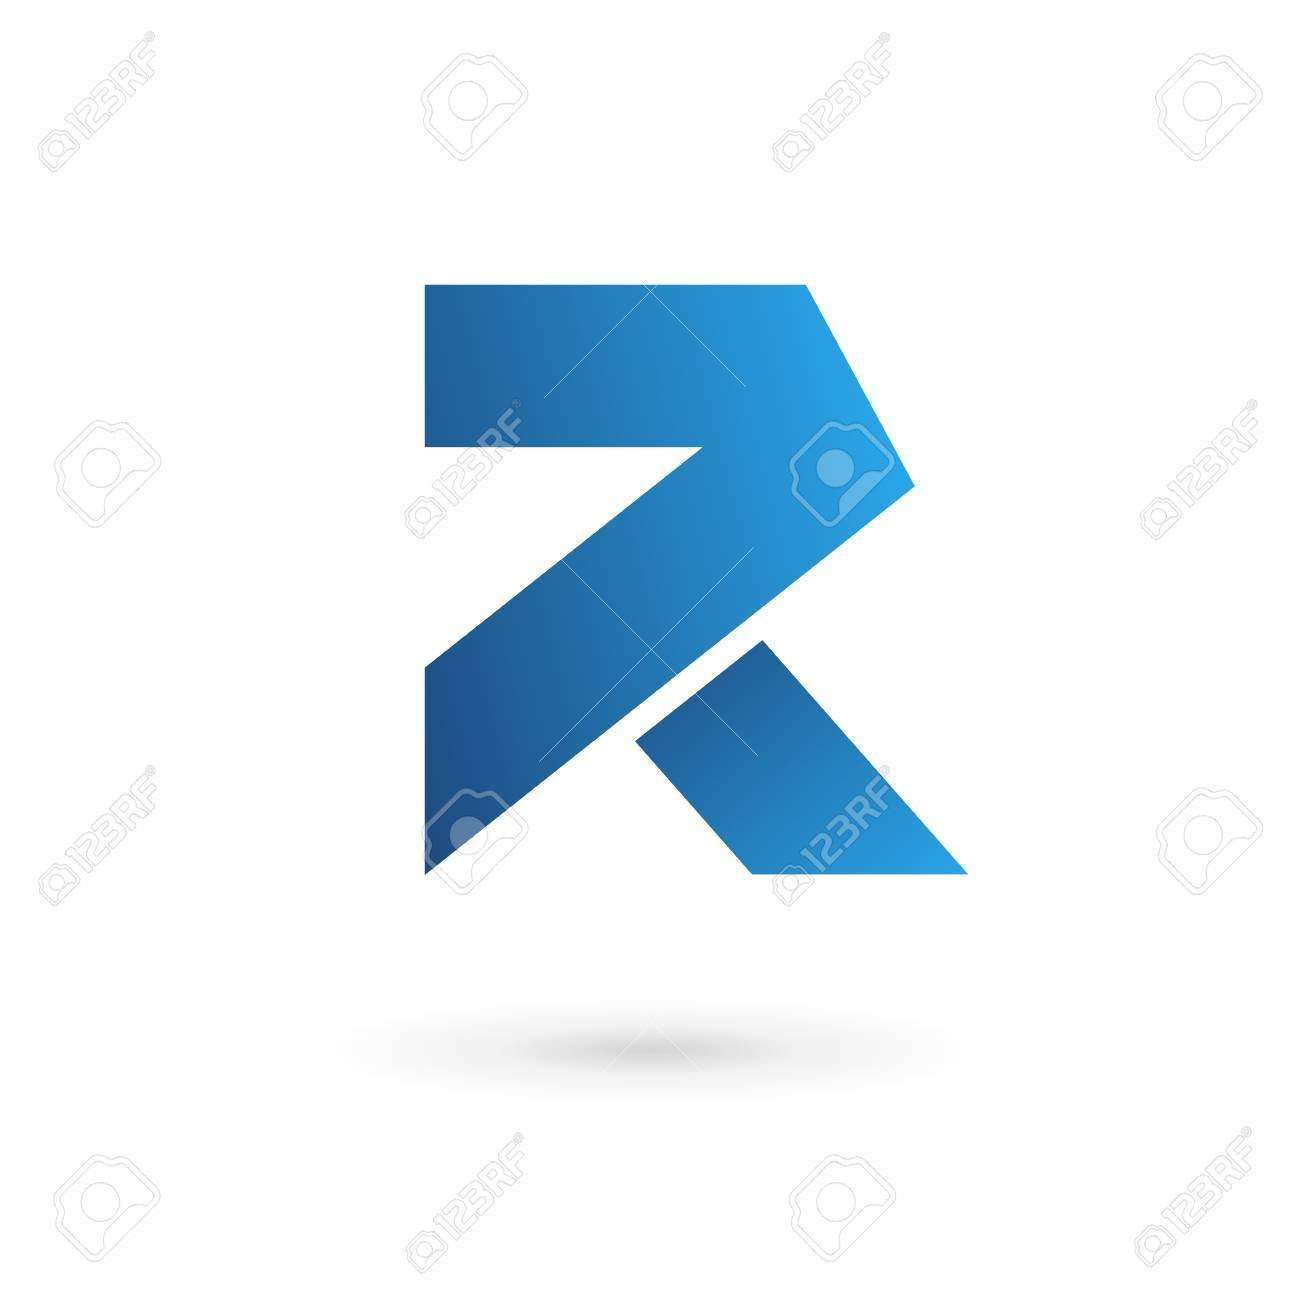 letter r logo icon design template elements royalty free cliparts